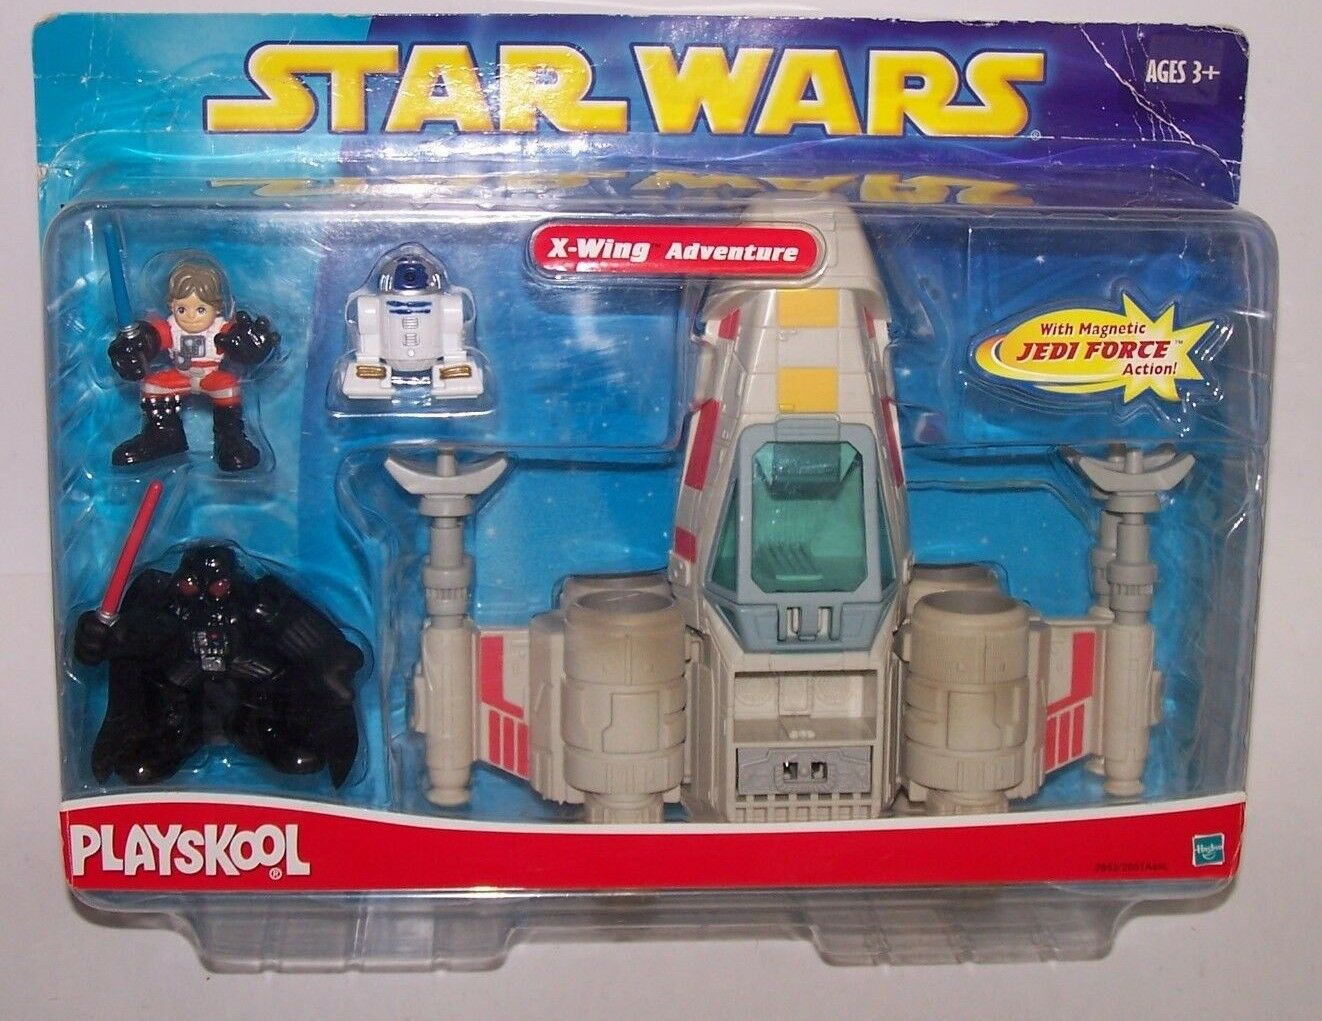 Star Wars X-Wing Adventure with Magnetic Jedi Force Action Playskool NIB